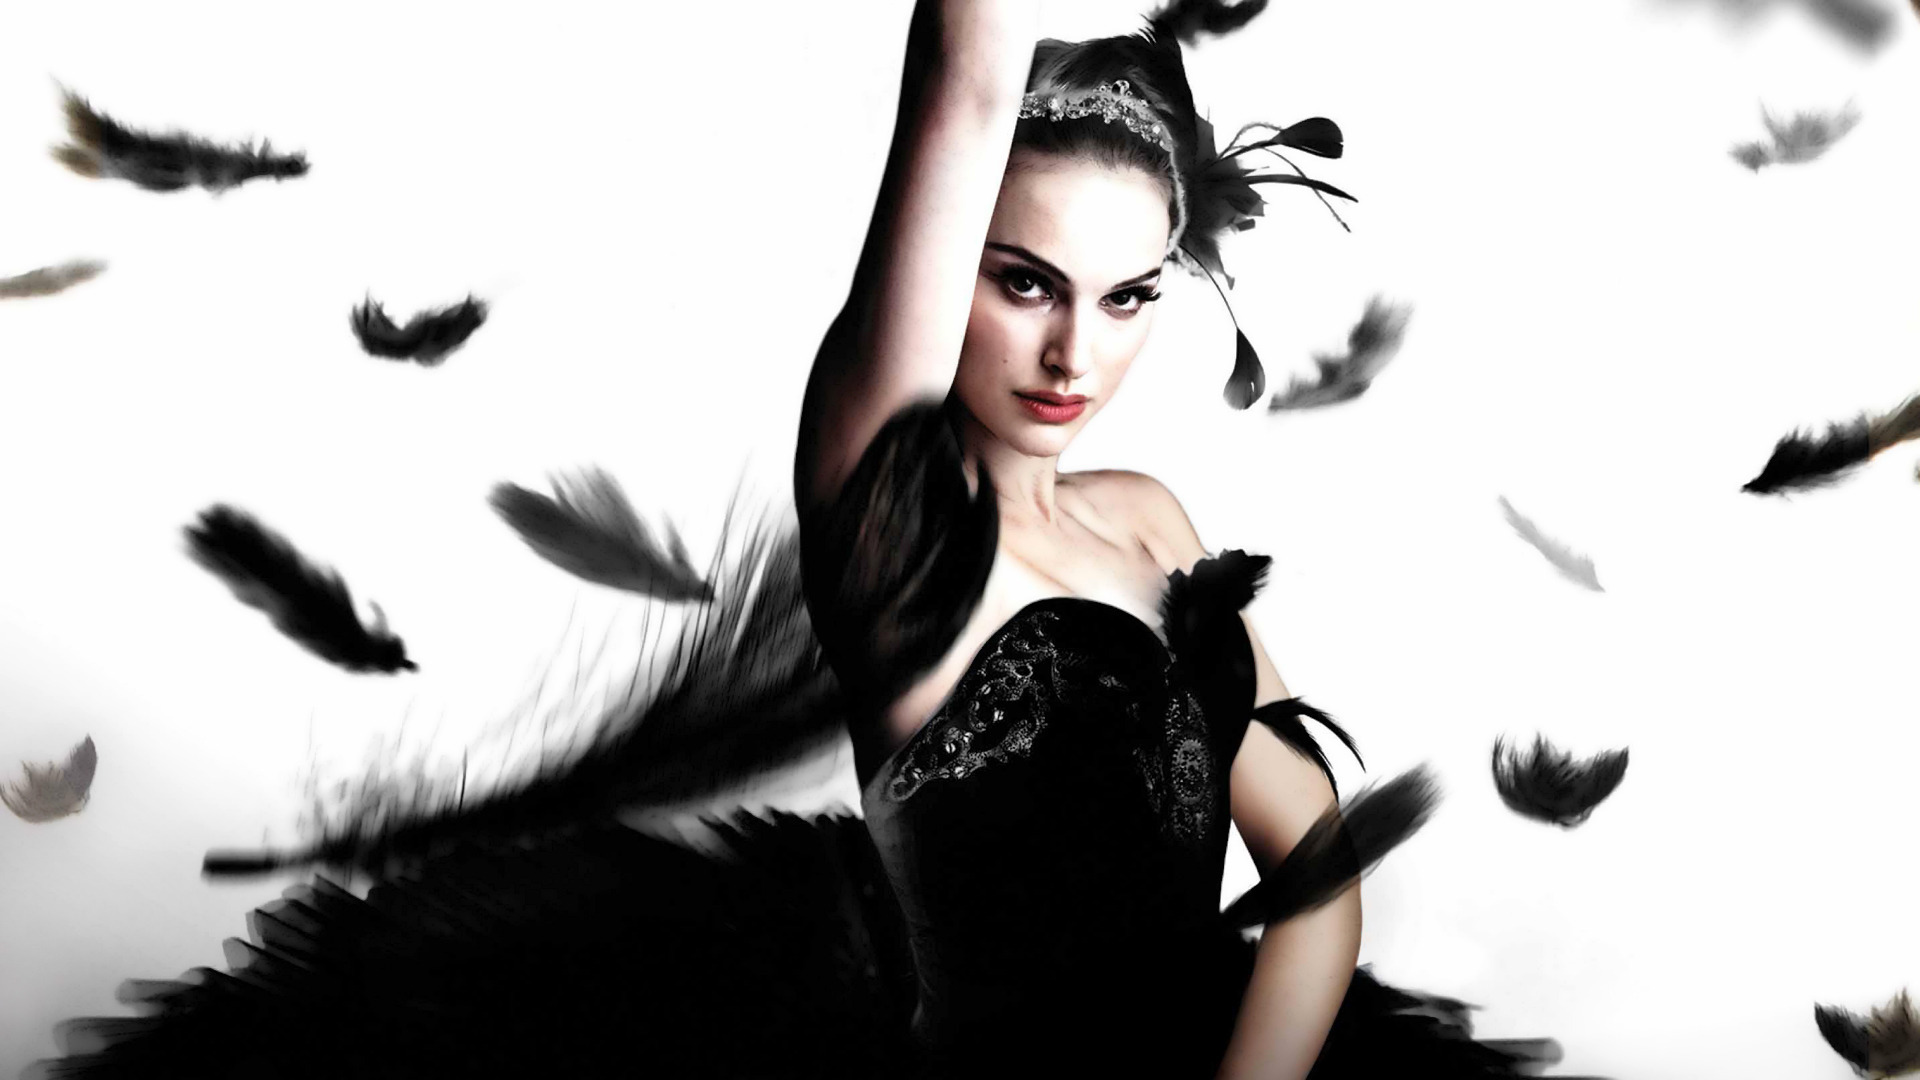 Natalie Portman in Black Swan 1804.48 Kb